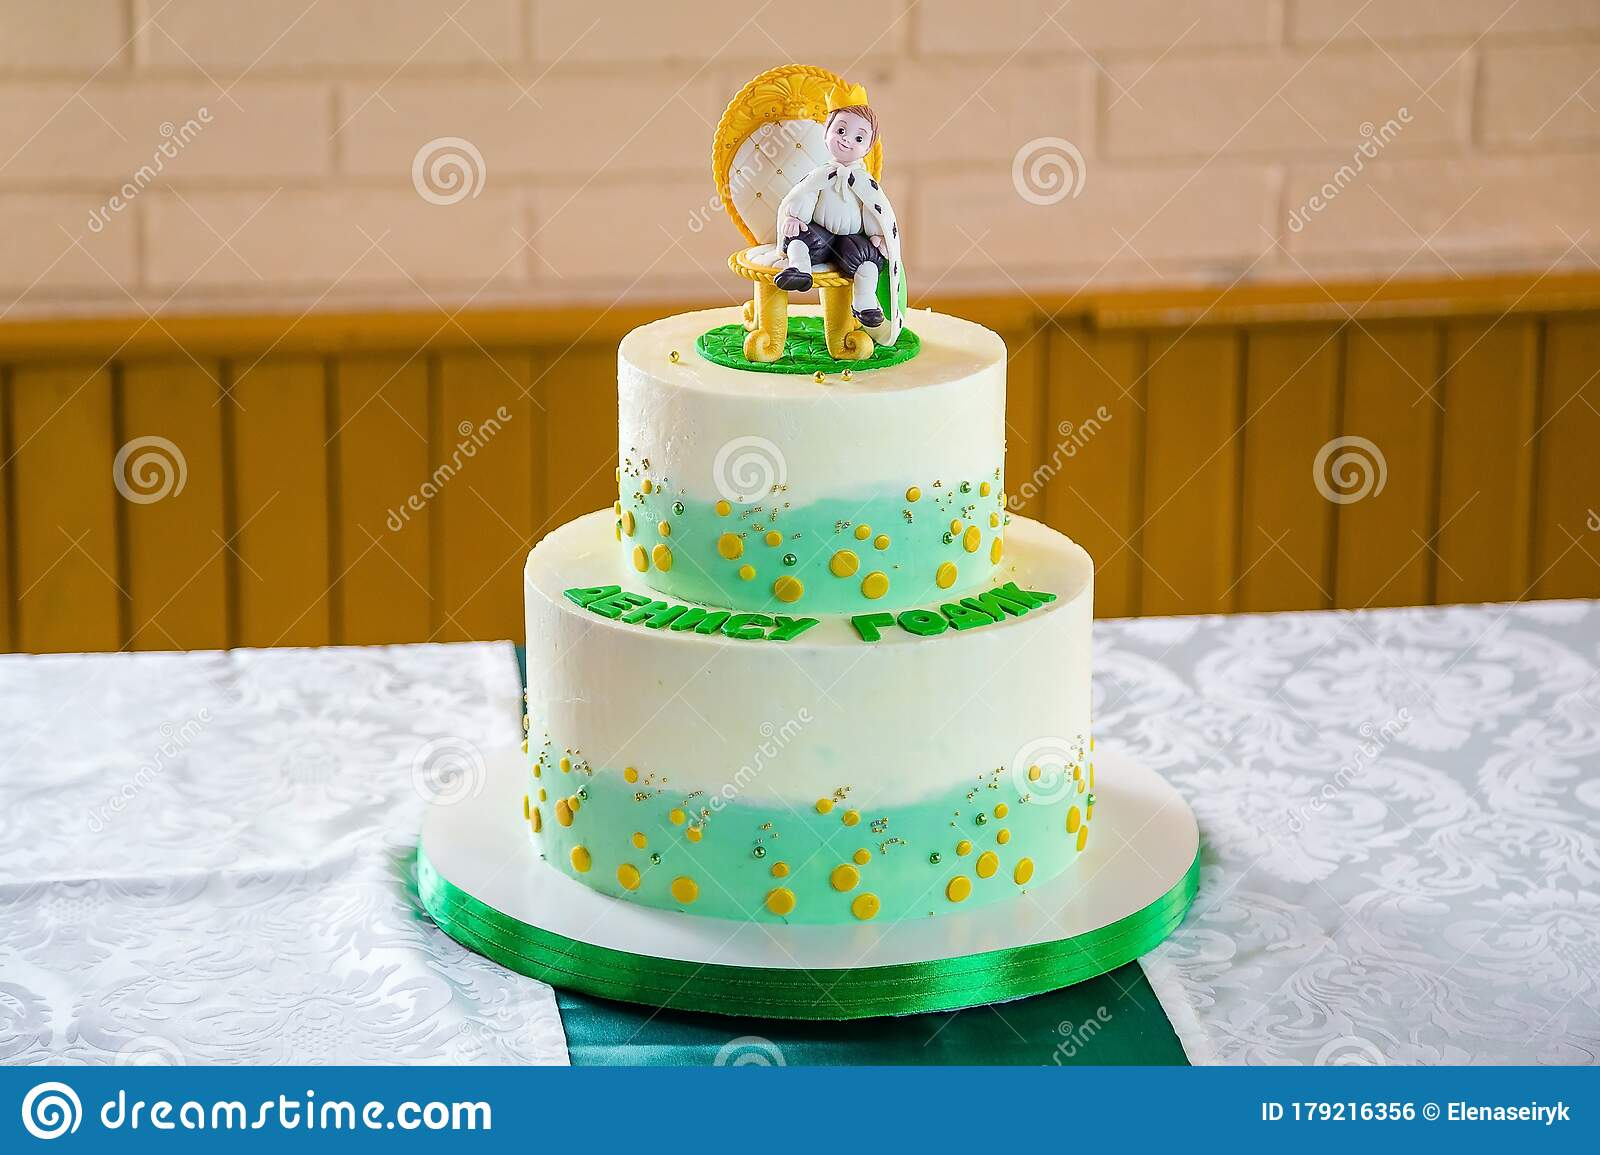 Terrific Birthday Cake For Boy With Little Prince Character Sugar Mastic Funny Birthday Cards Online Alyptdamsfinfo